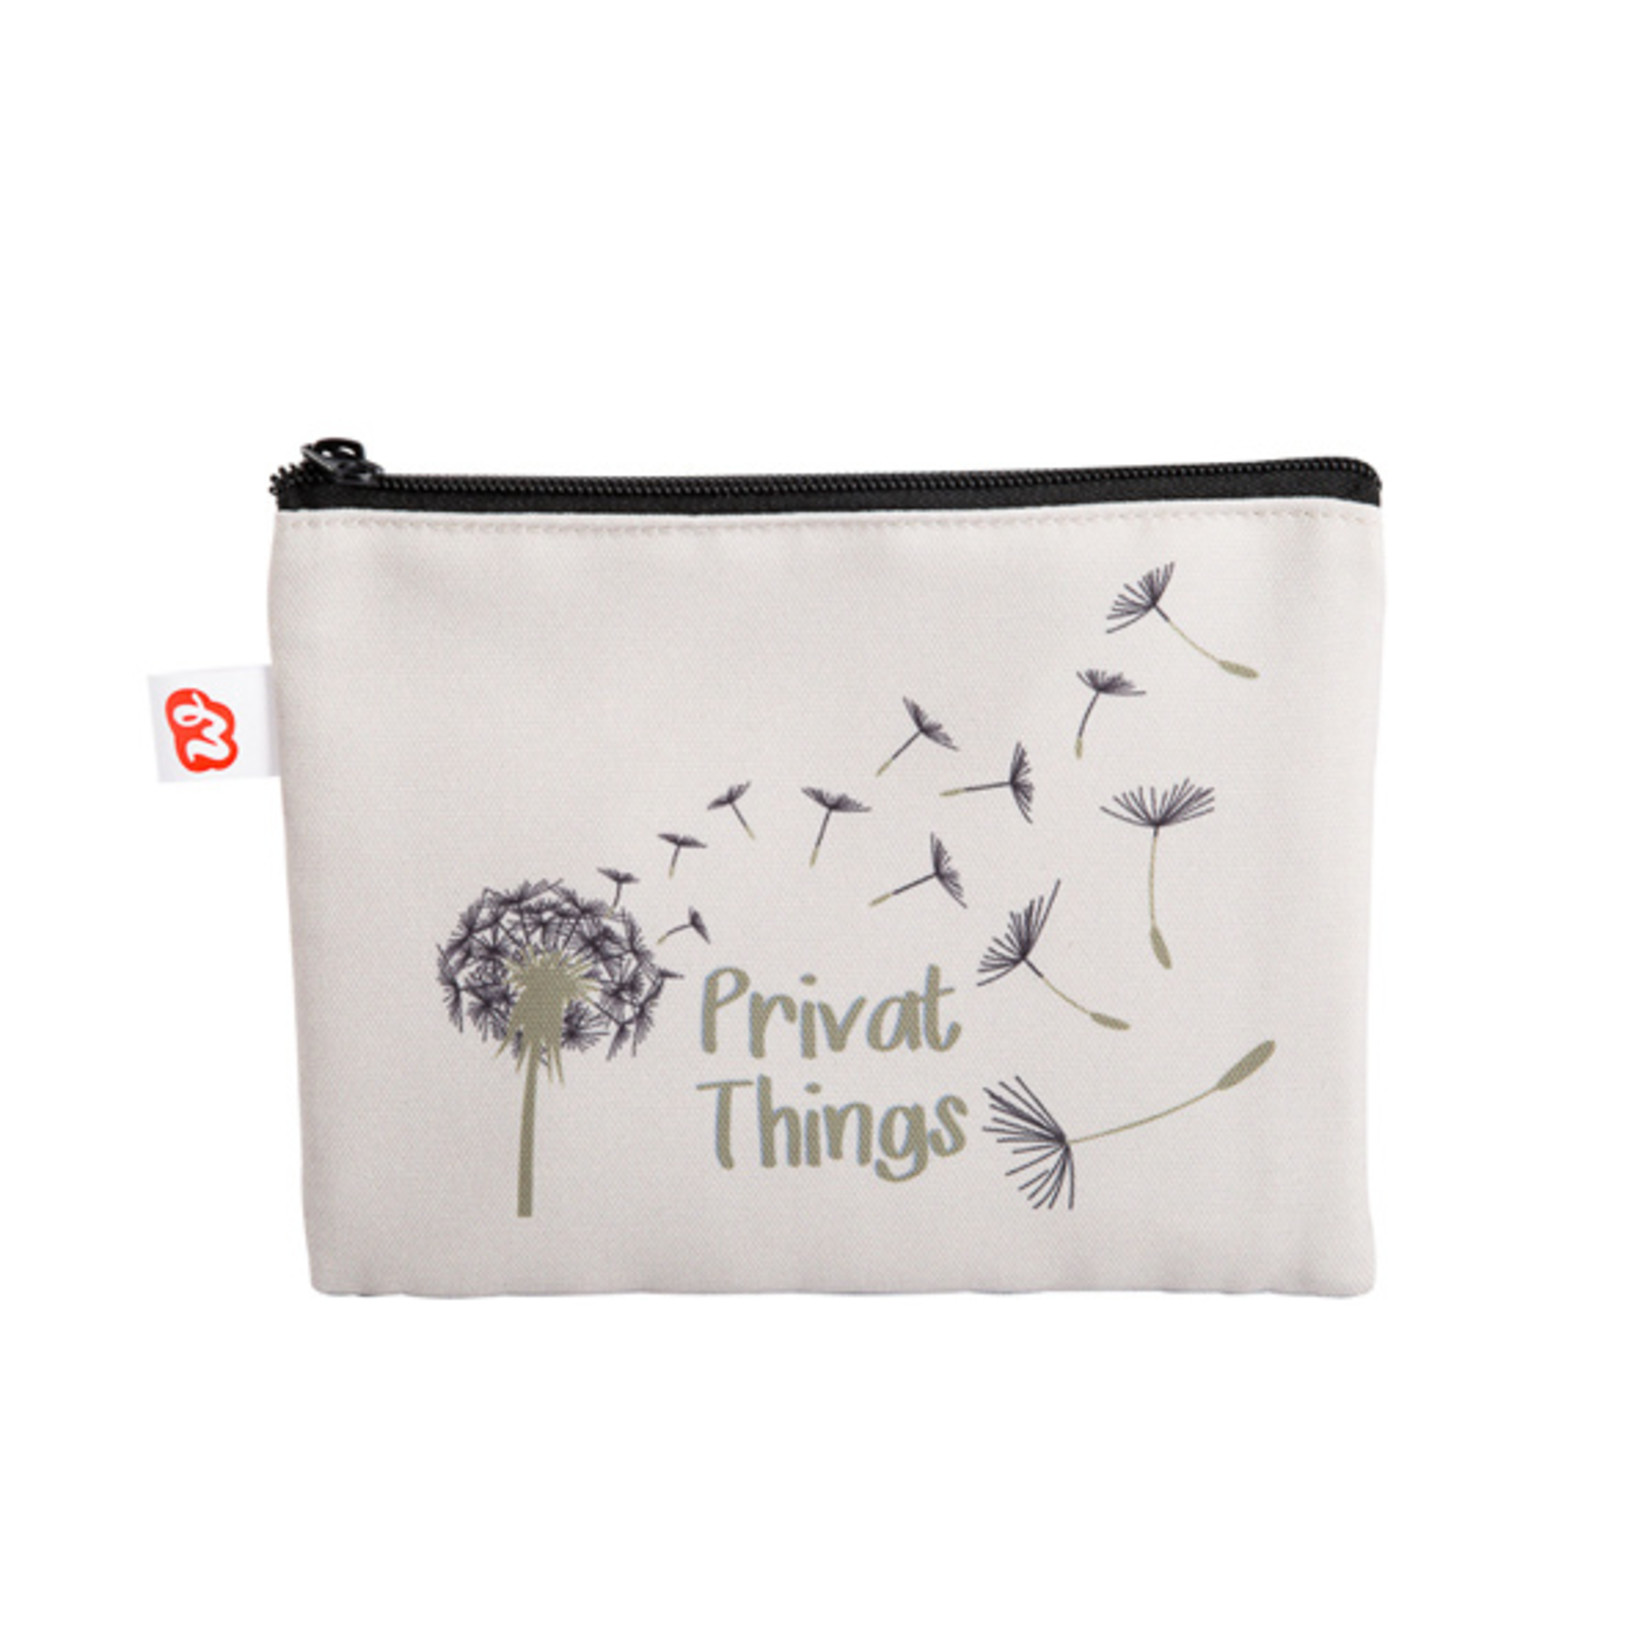 MiCa 33317 Privat things little bag